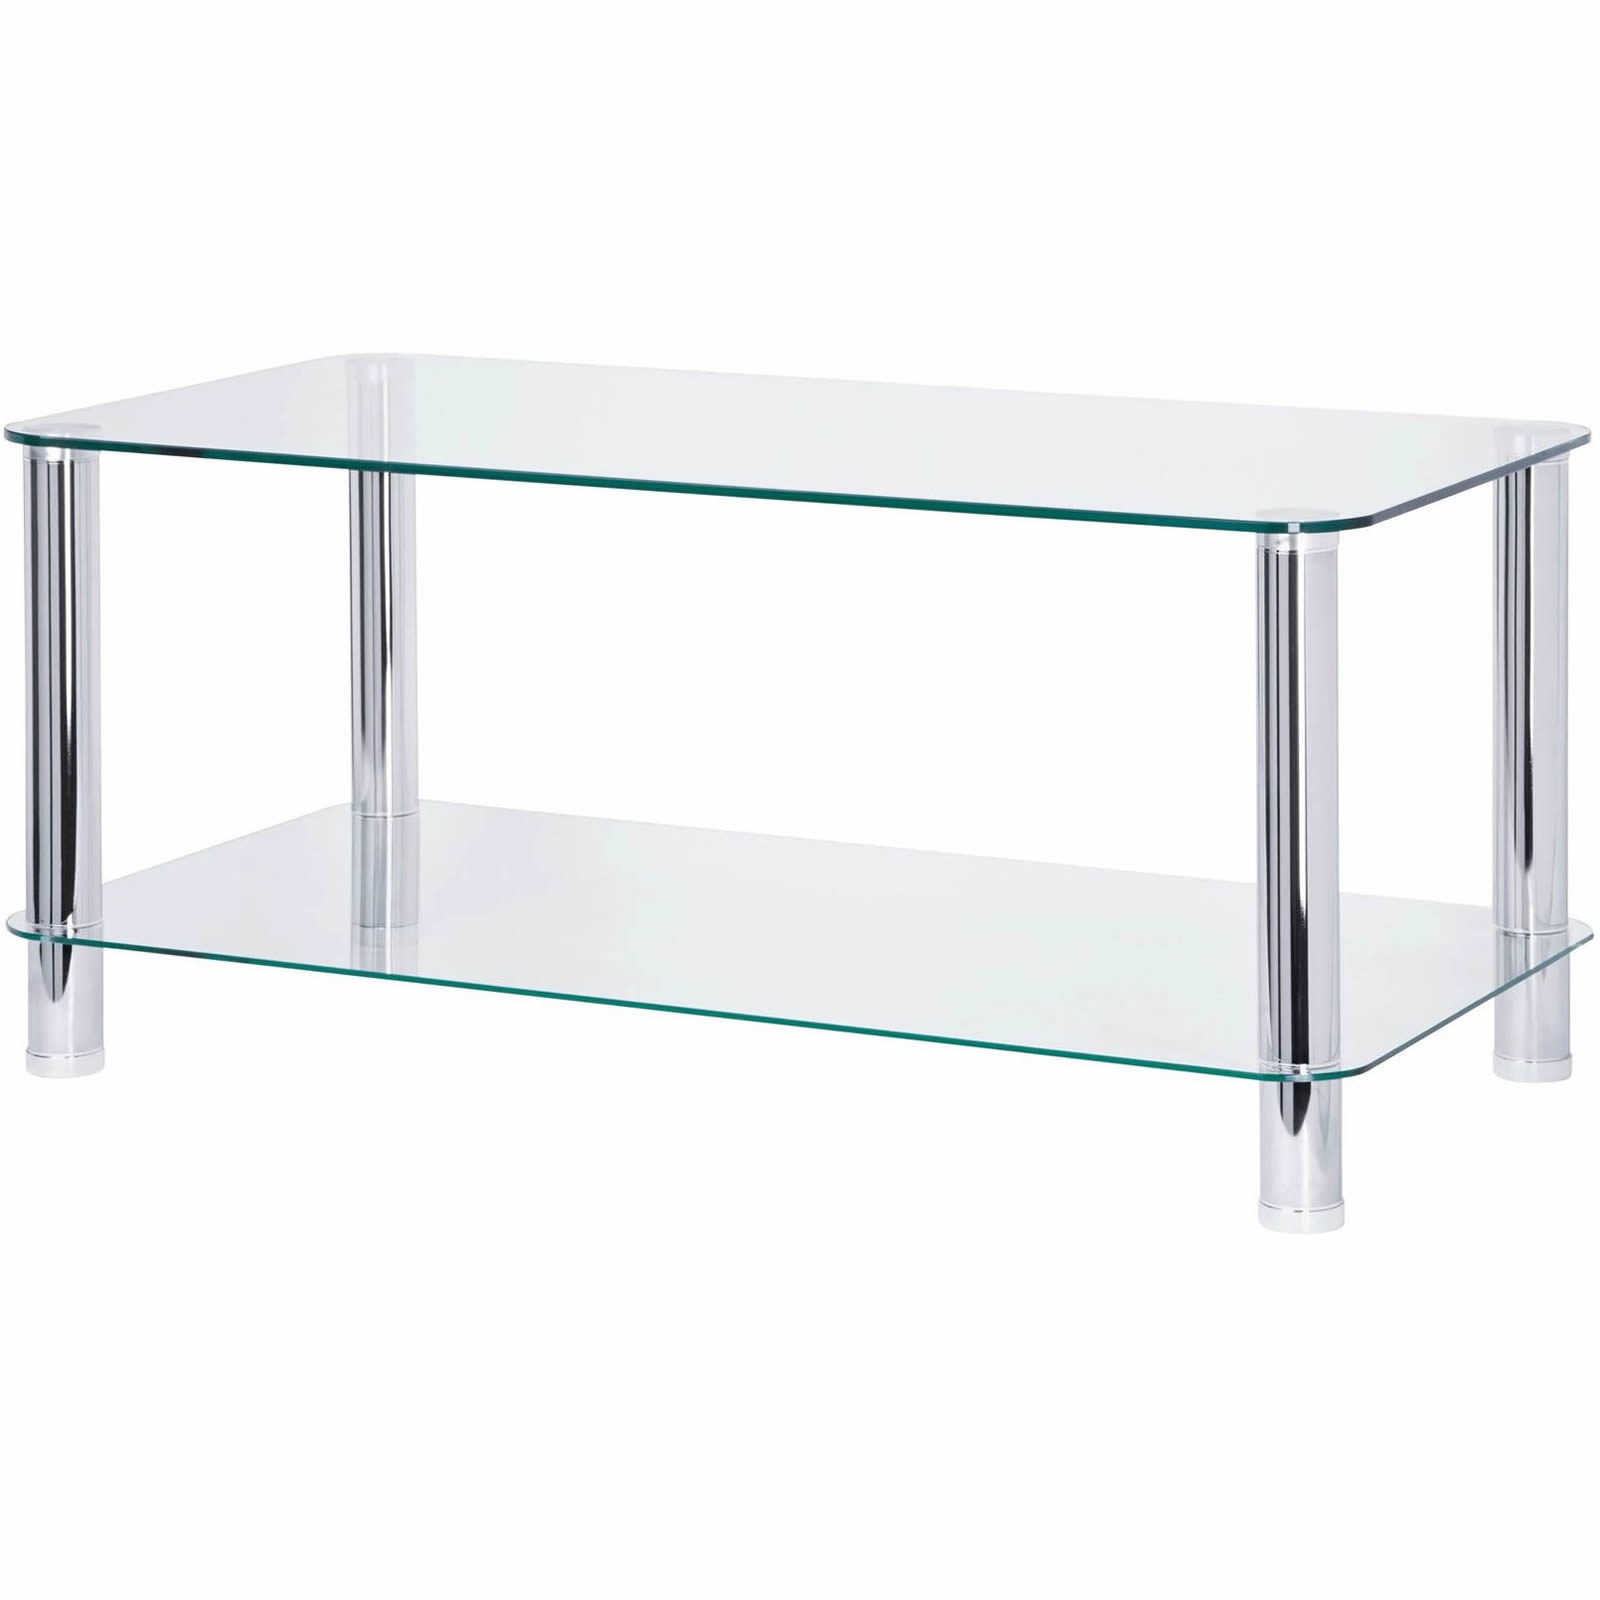 Habitat Herrmann Square Glass Coffee Table: Double Layer Glass Coffee Table